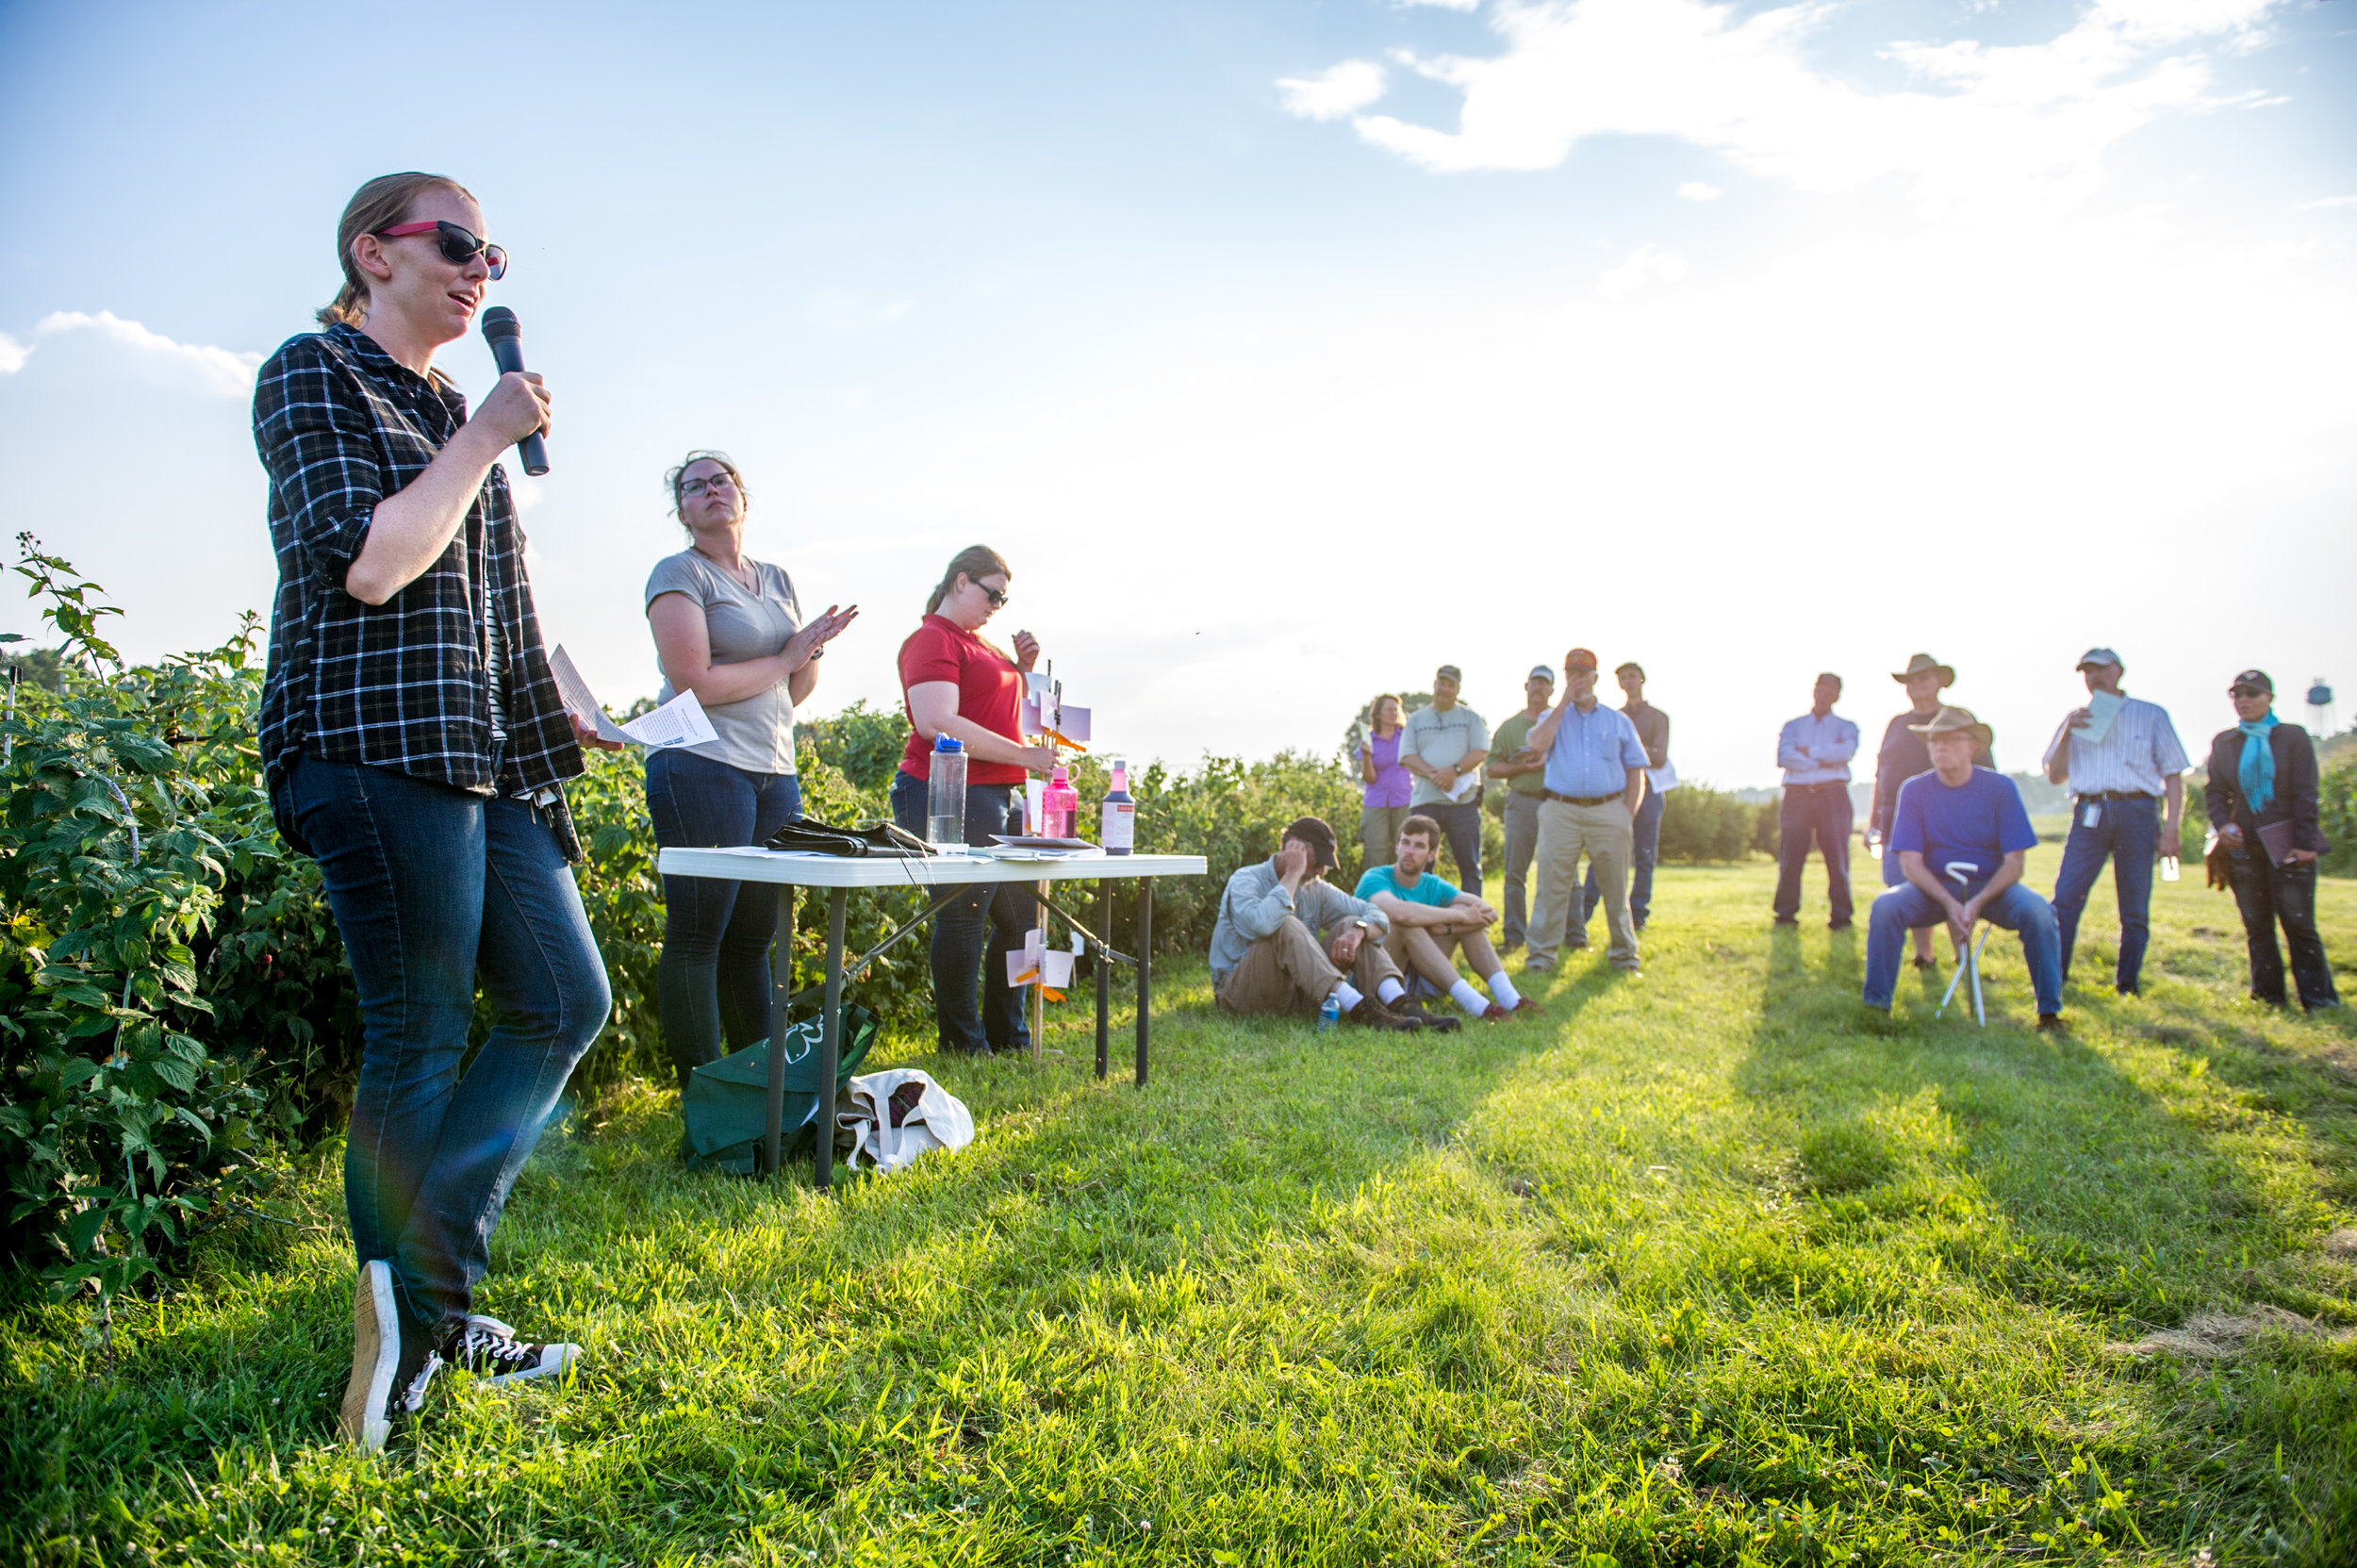 Image by Edwin Remsberg. Image of participants at the WMREC Horticulture Twilight Tour.